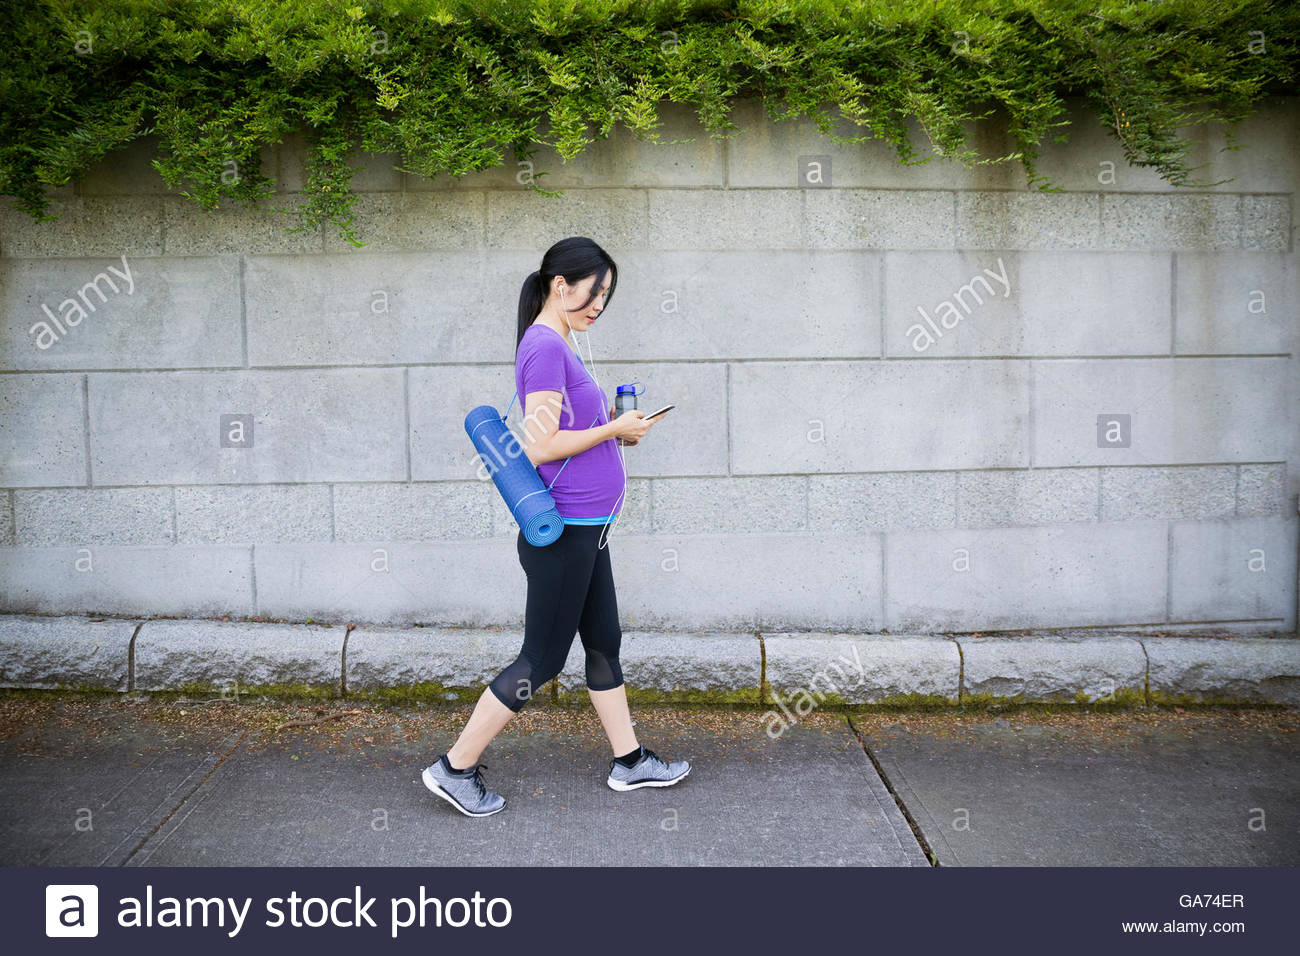 Pregnant woman with yoga mat and headphones using cell phone on sidewalk - Stock Image